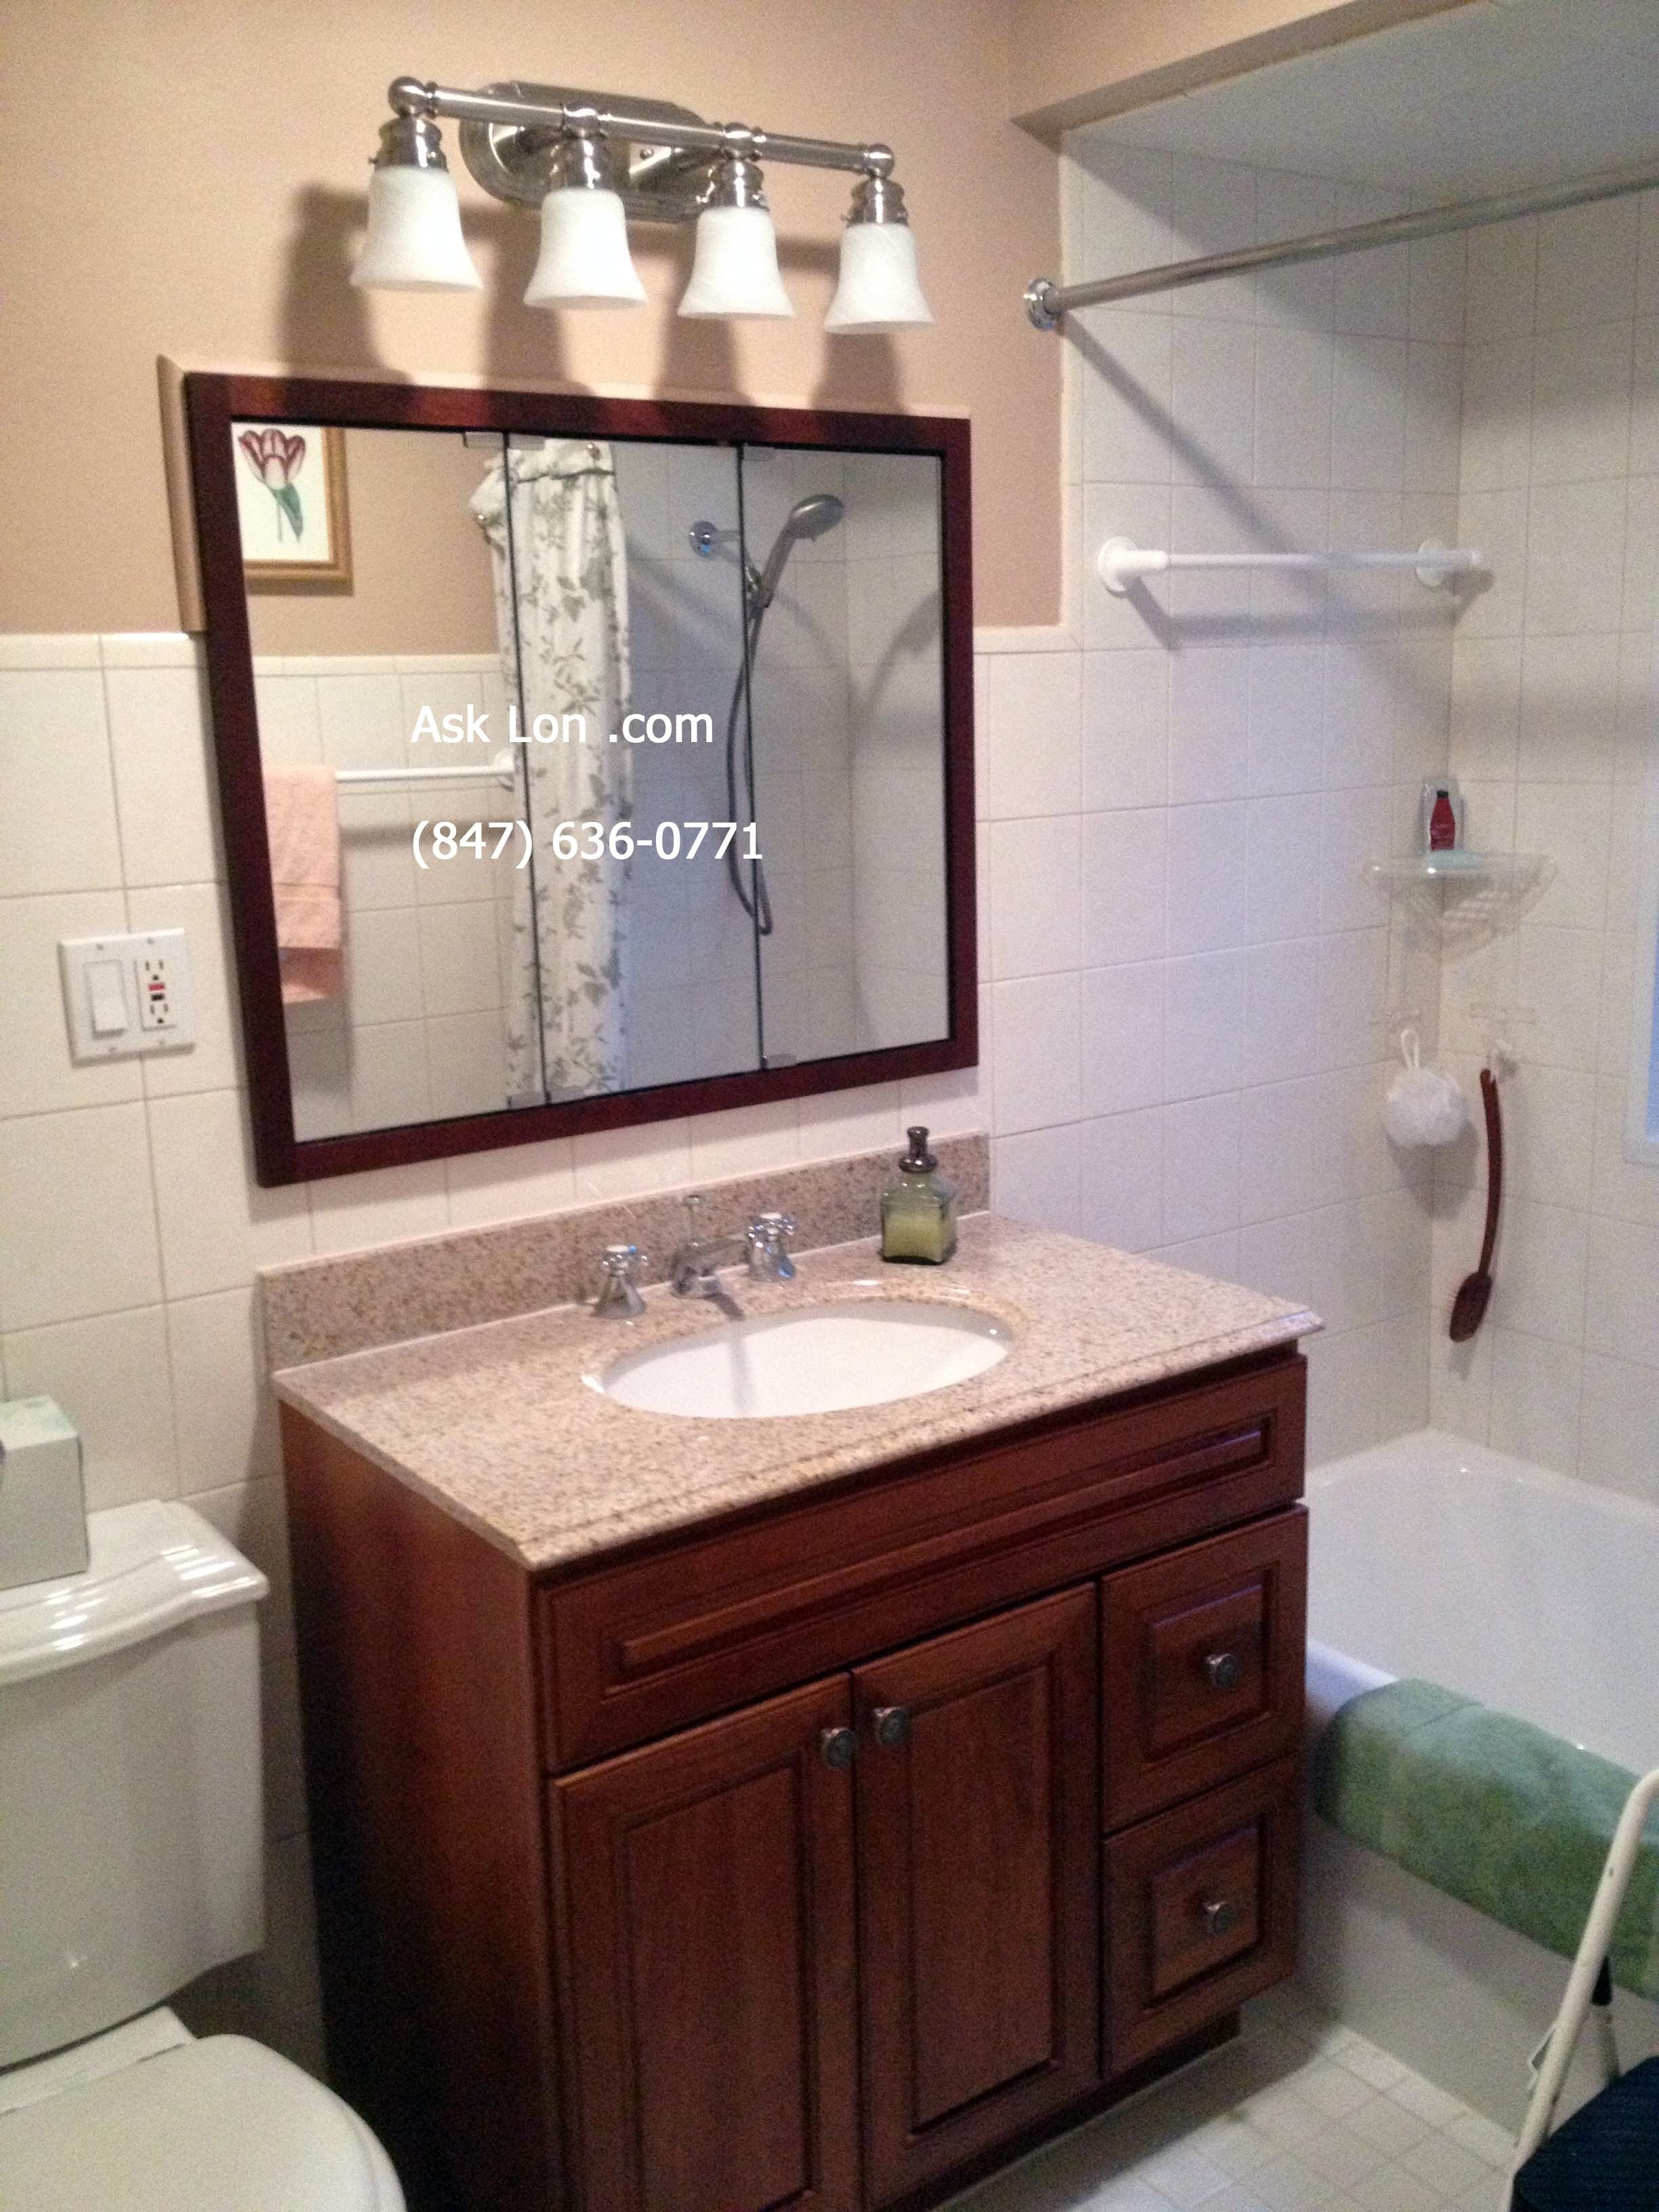 Recommended Height For Bathroom Vanity Lights